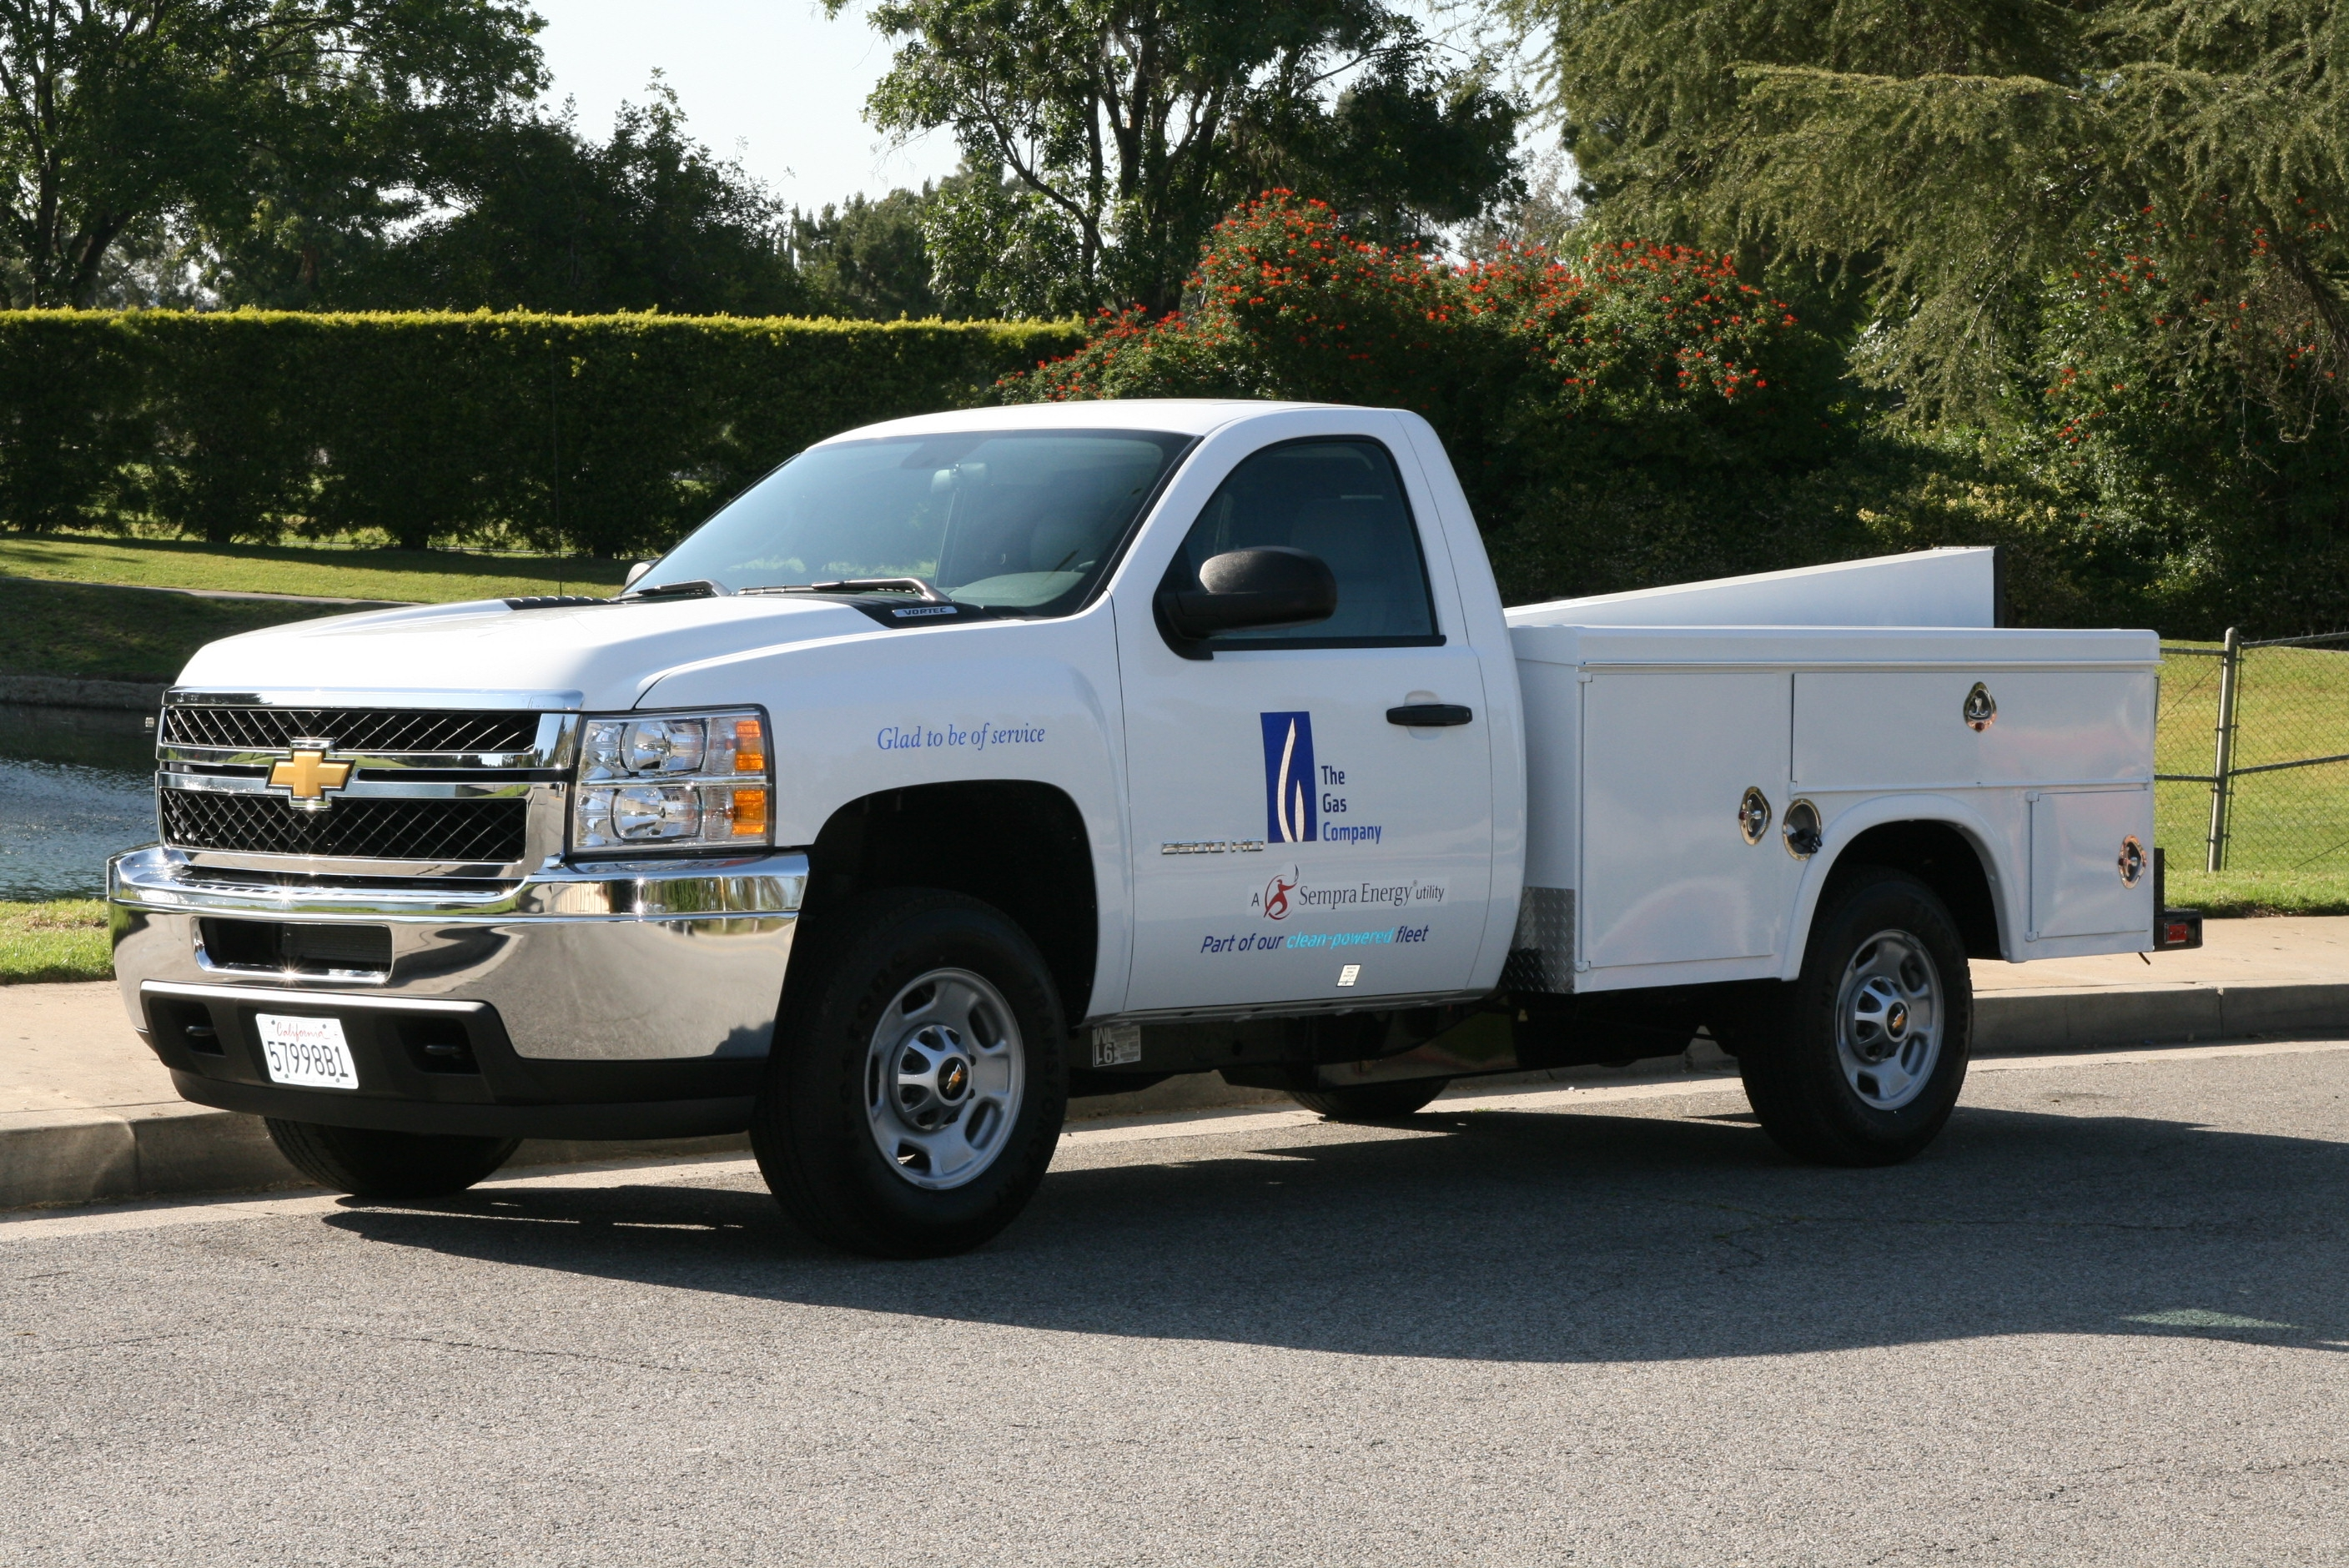 How SoCalGas Uses Replacement Cycles to Fast Track CNG Initiatives